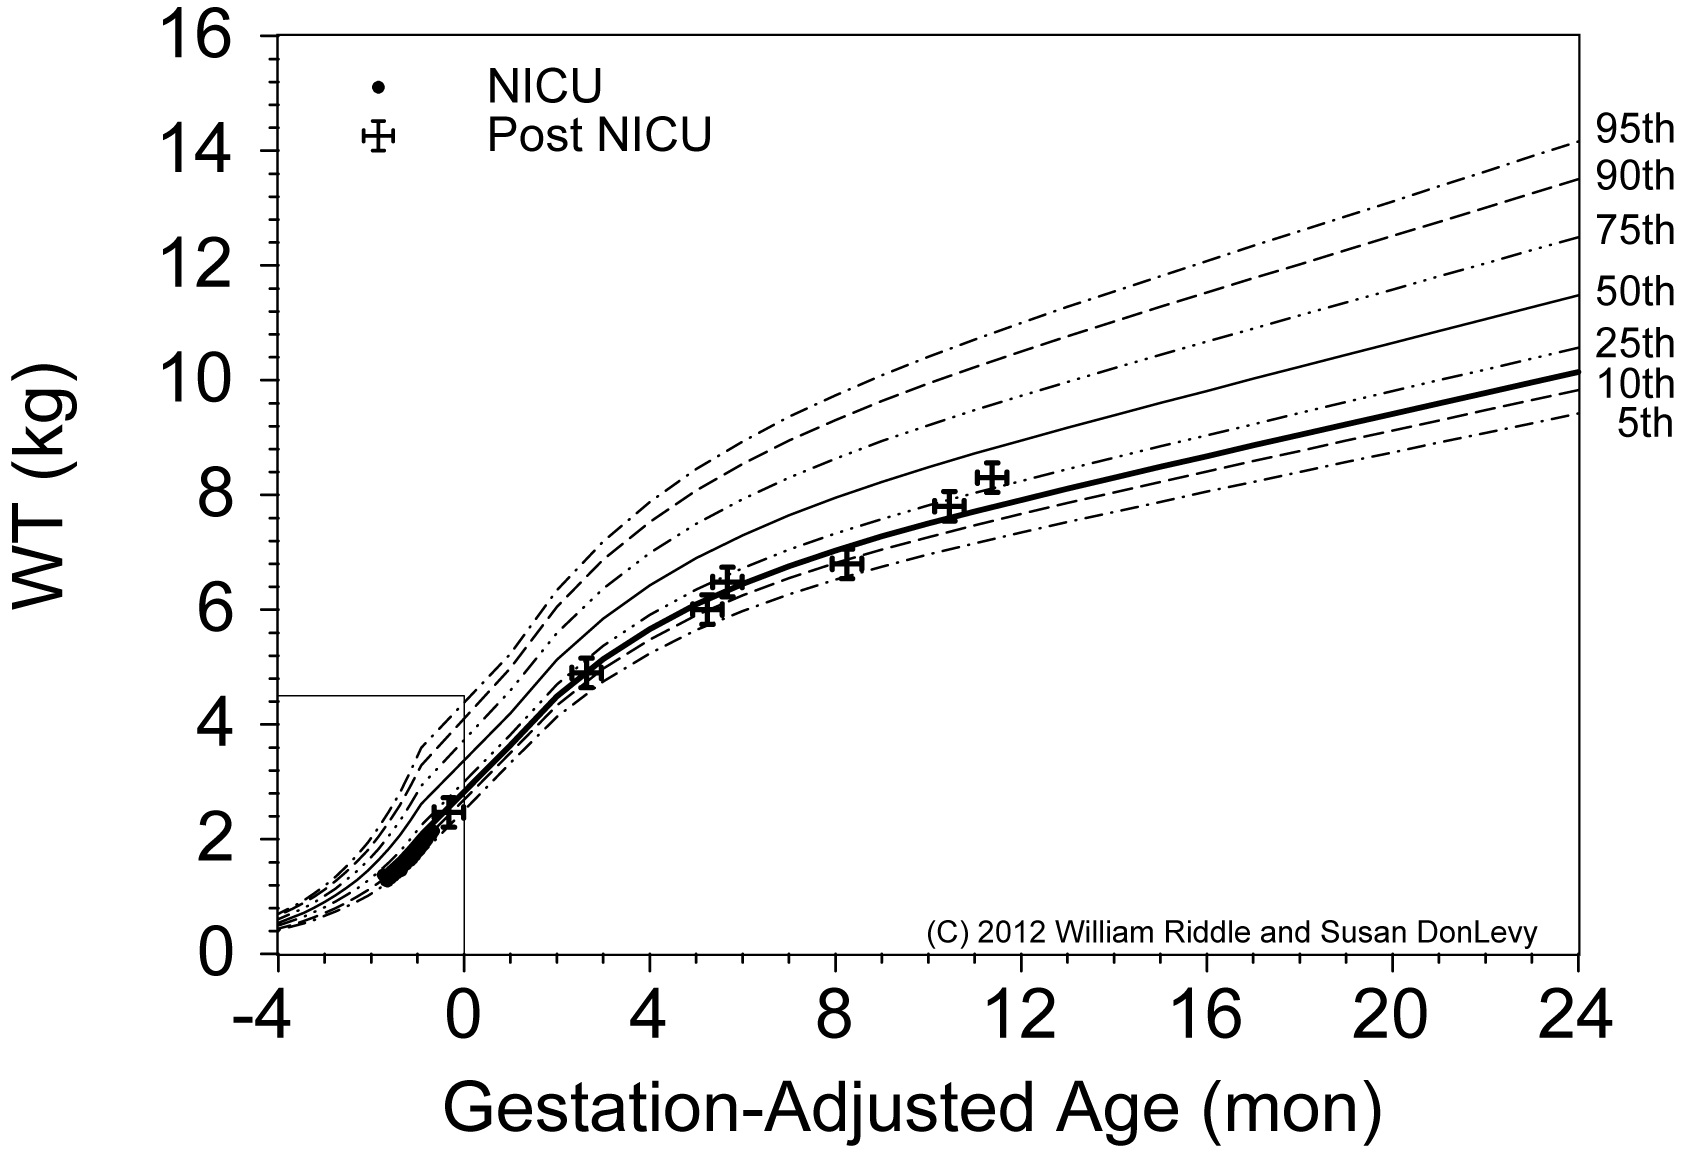 Neonatology clinical pediatrics full text herald scholarly figure 11 5th 10th 25th 50th 75th 90th and 95th percentiles of female combined intrauterine who growth curves values for a female infant with a birth nvjuhfo Gallery